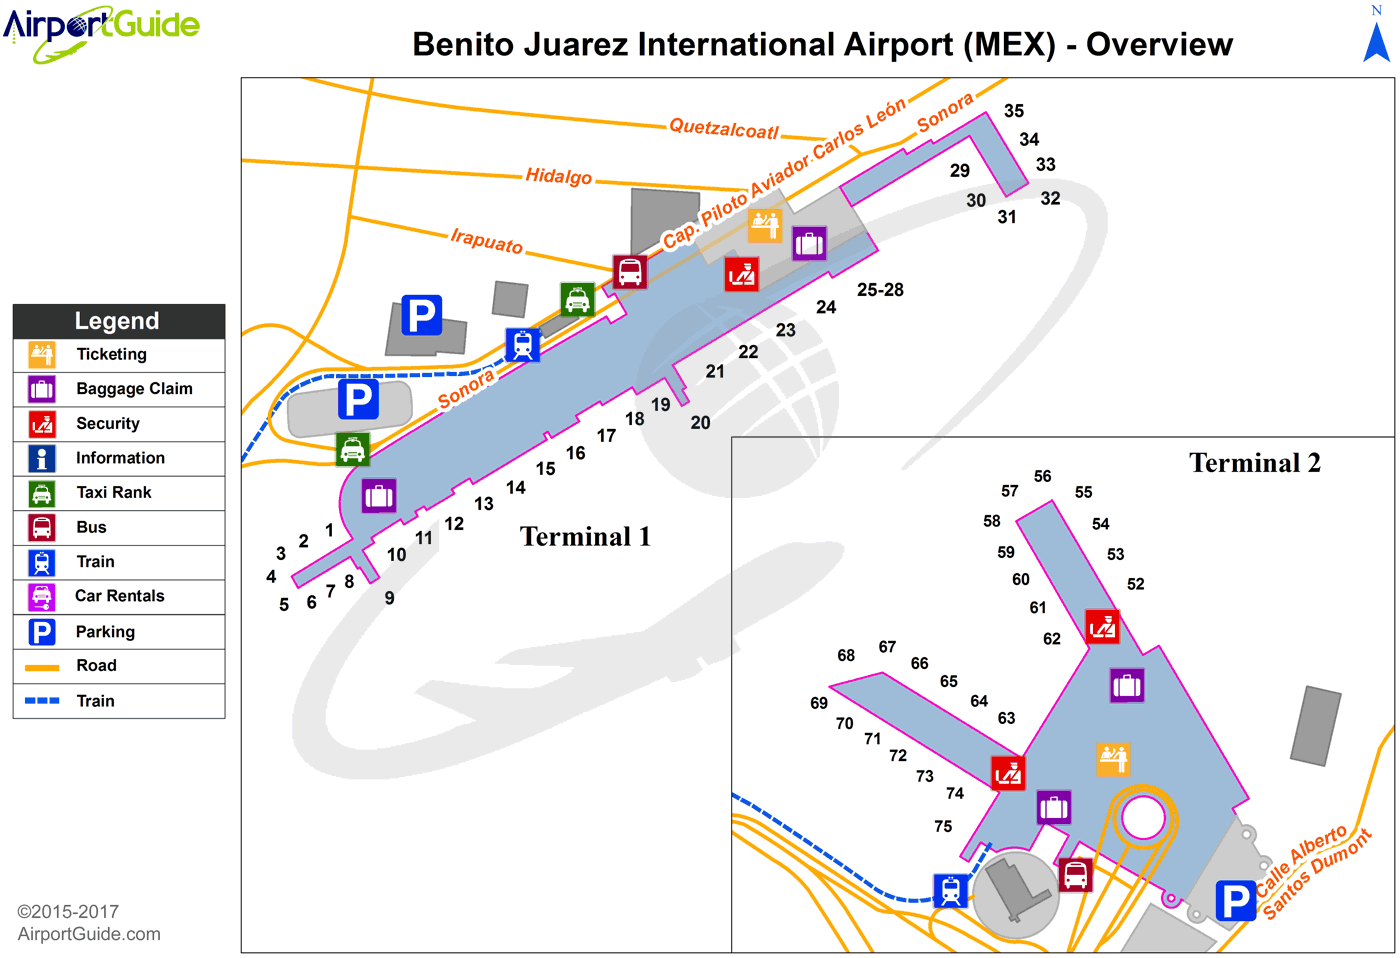 Mexico City - Licenciado Benito Juarez International (MEX) Airport Terminal Map - Overview